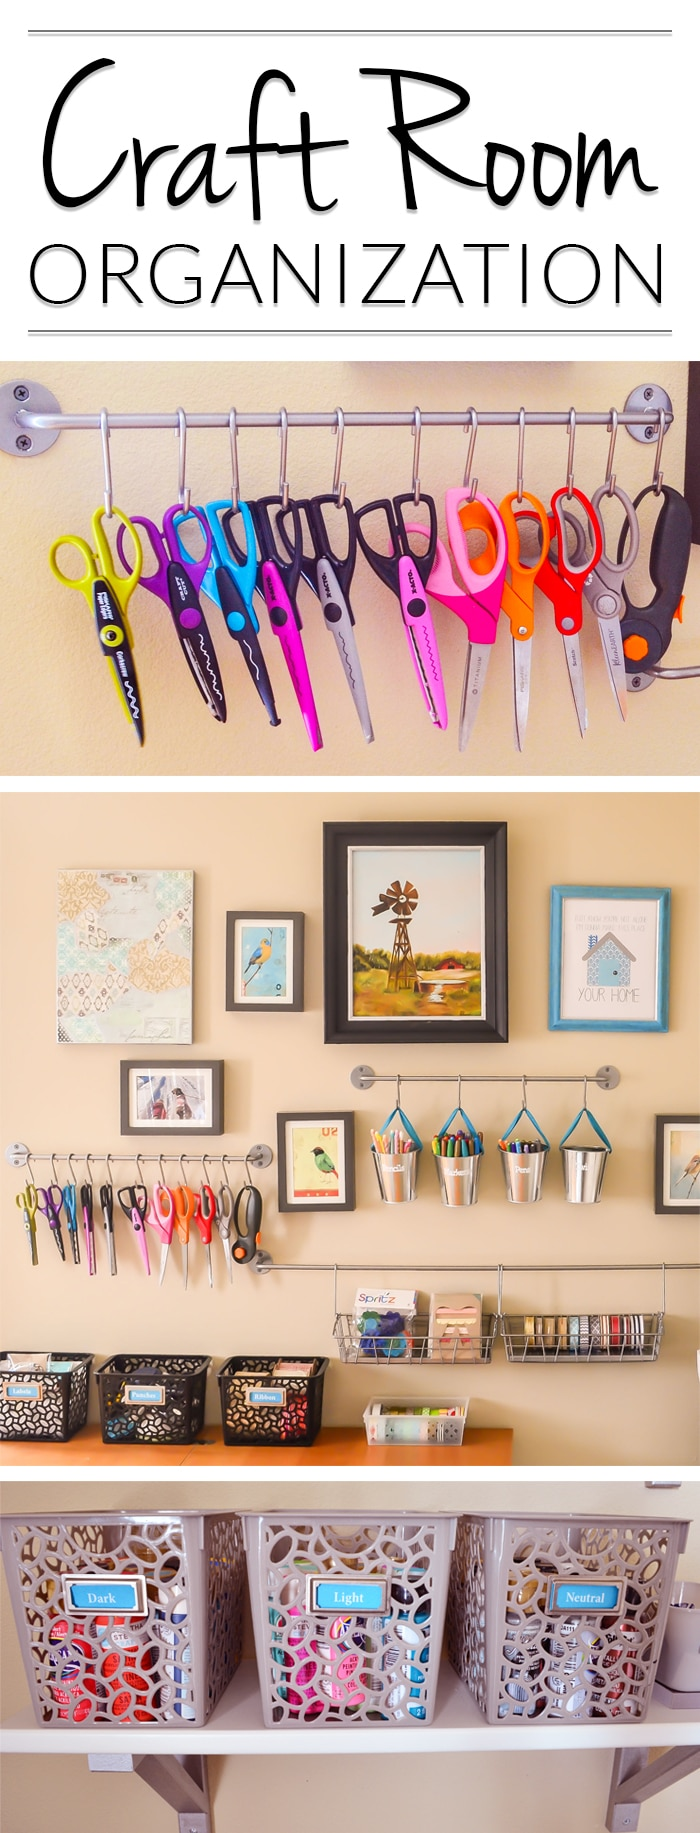 Oh! Craft Room Organizing U0026 Storage Ideas That Would Actually Work In The  Corner Of